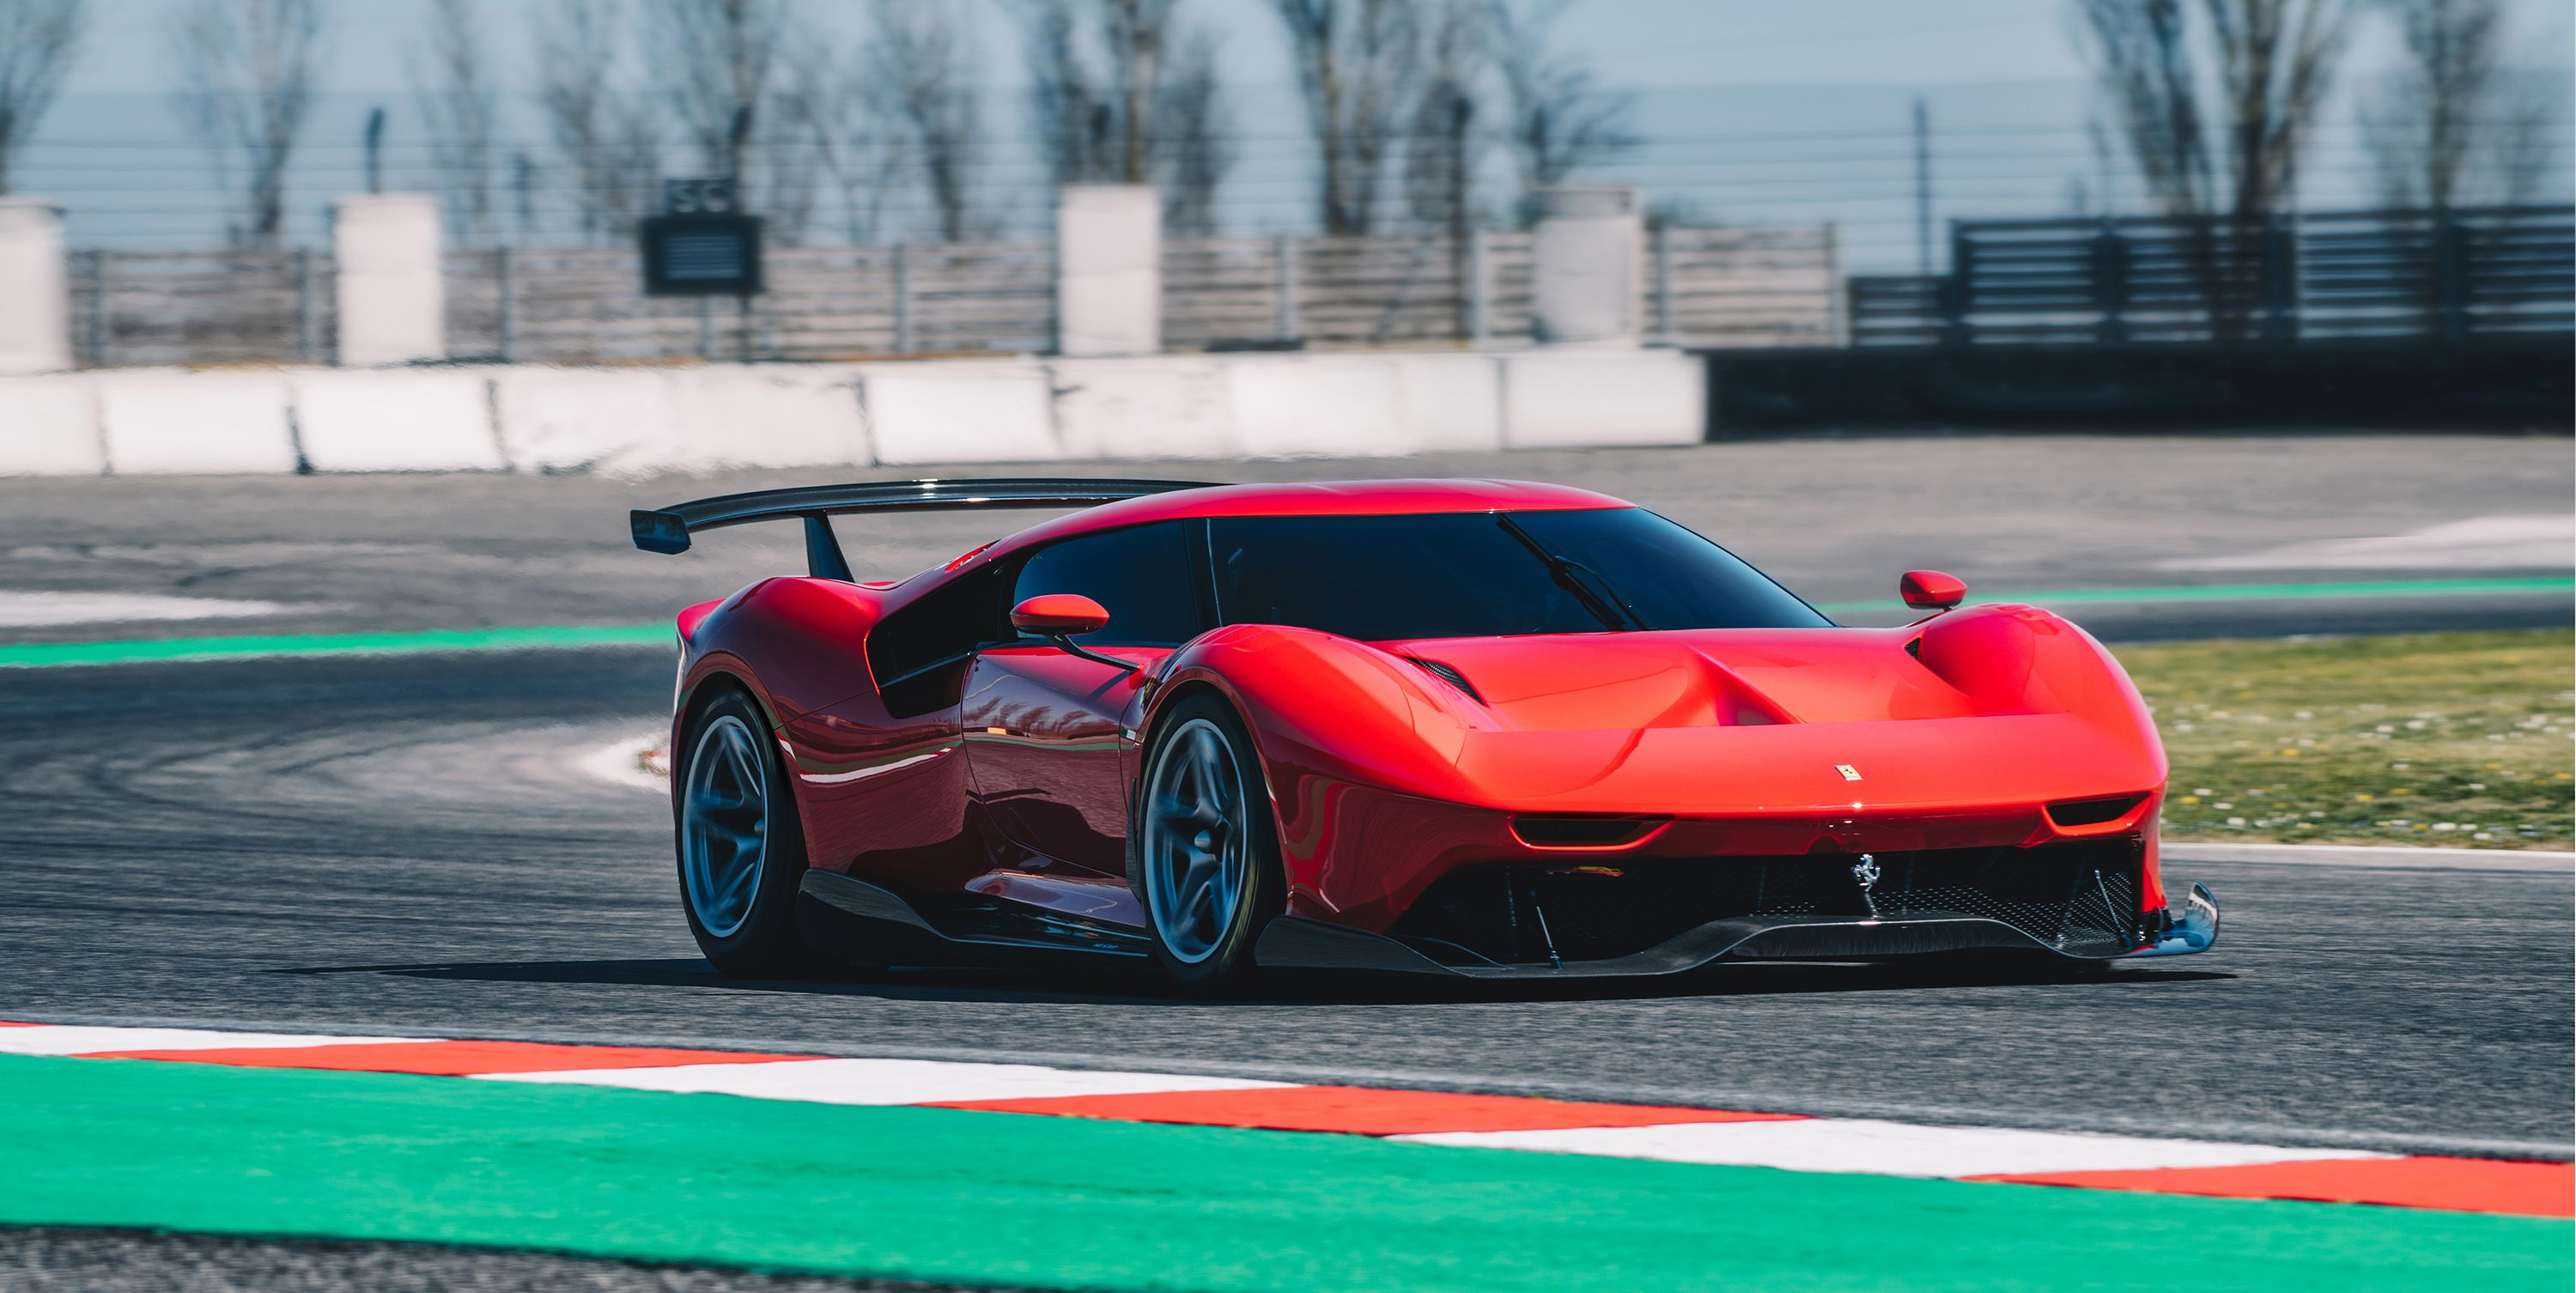 The Ferrari P80/C Is a Two-in-One Track Car and Garage Beauty, and There's Only One